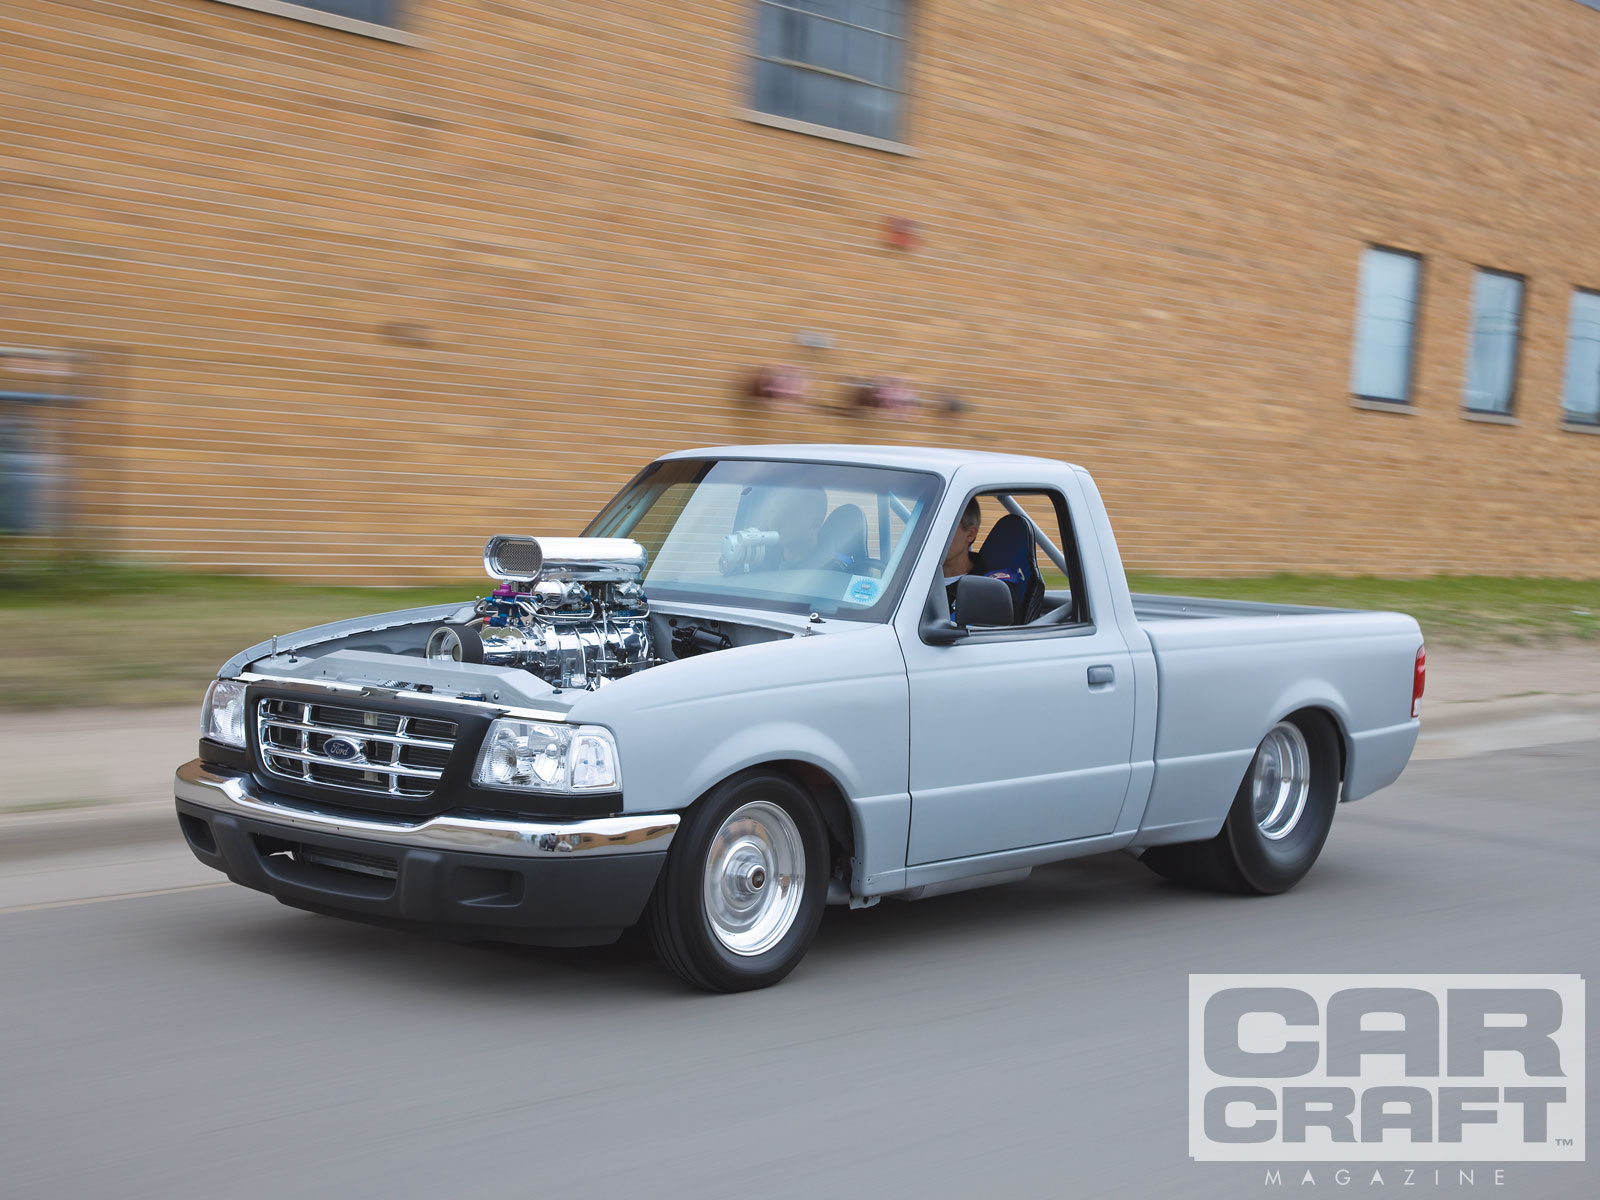 hight resolution of ccrp 0912 06 1998 ford ranger